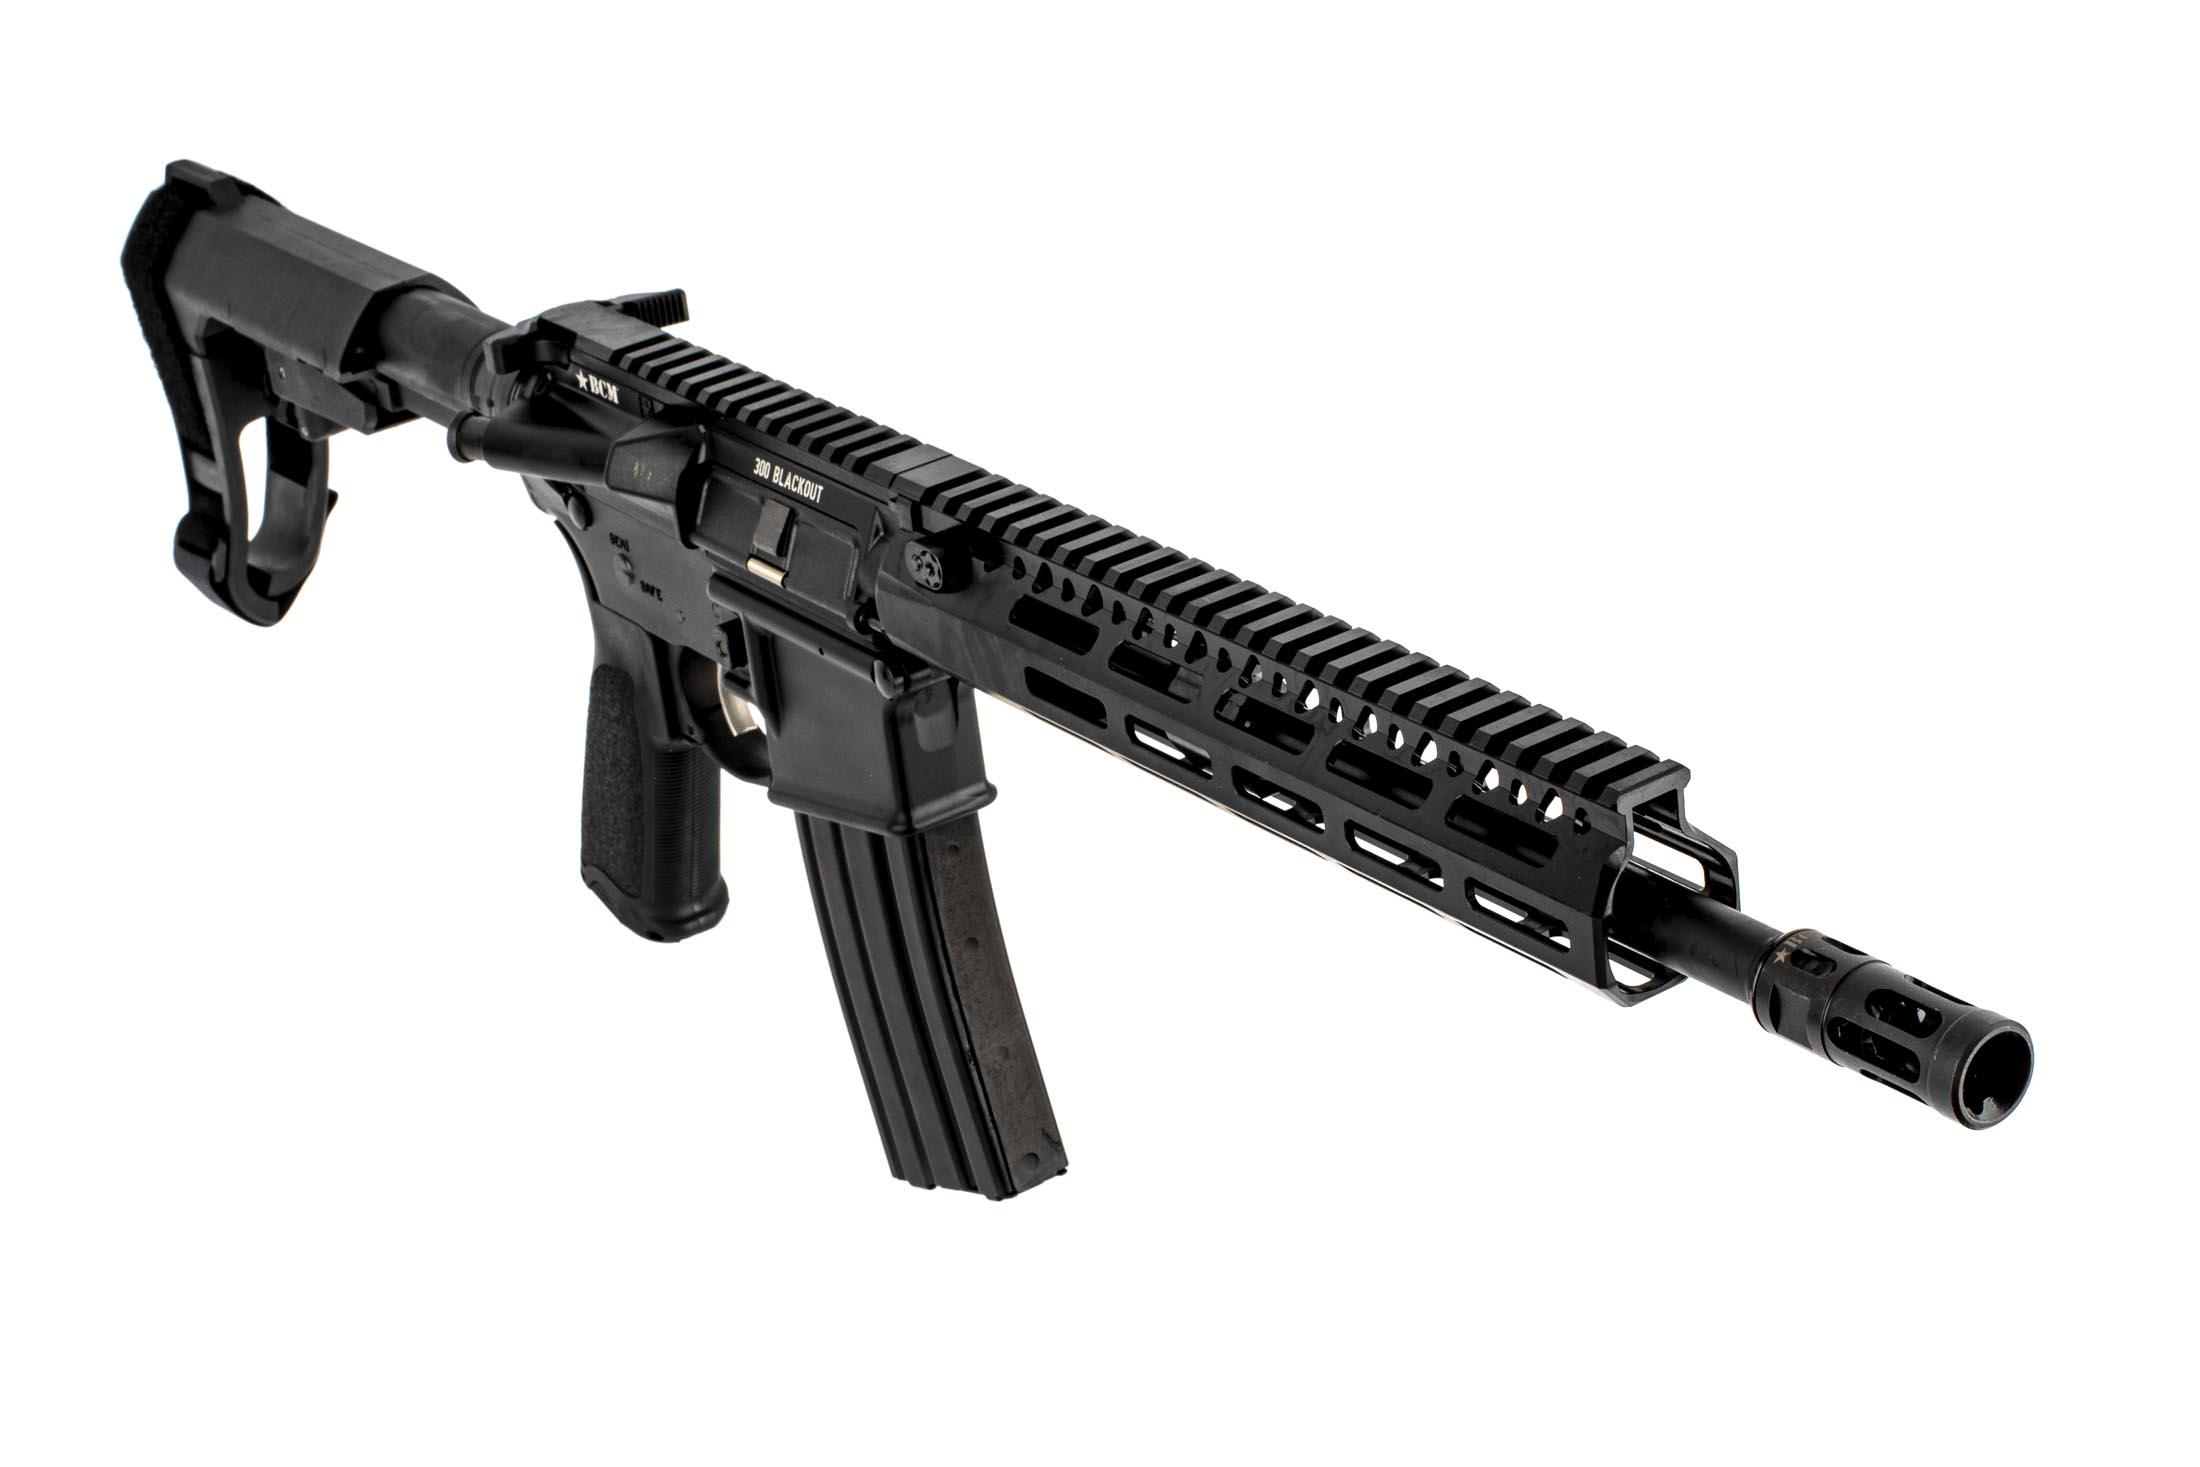 BCM RECCE-12 MCMR 300 BLK with 10in MCMR M-LOK Rail with MOD.0 Compensator